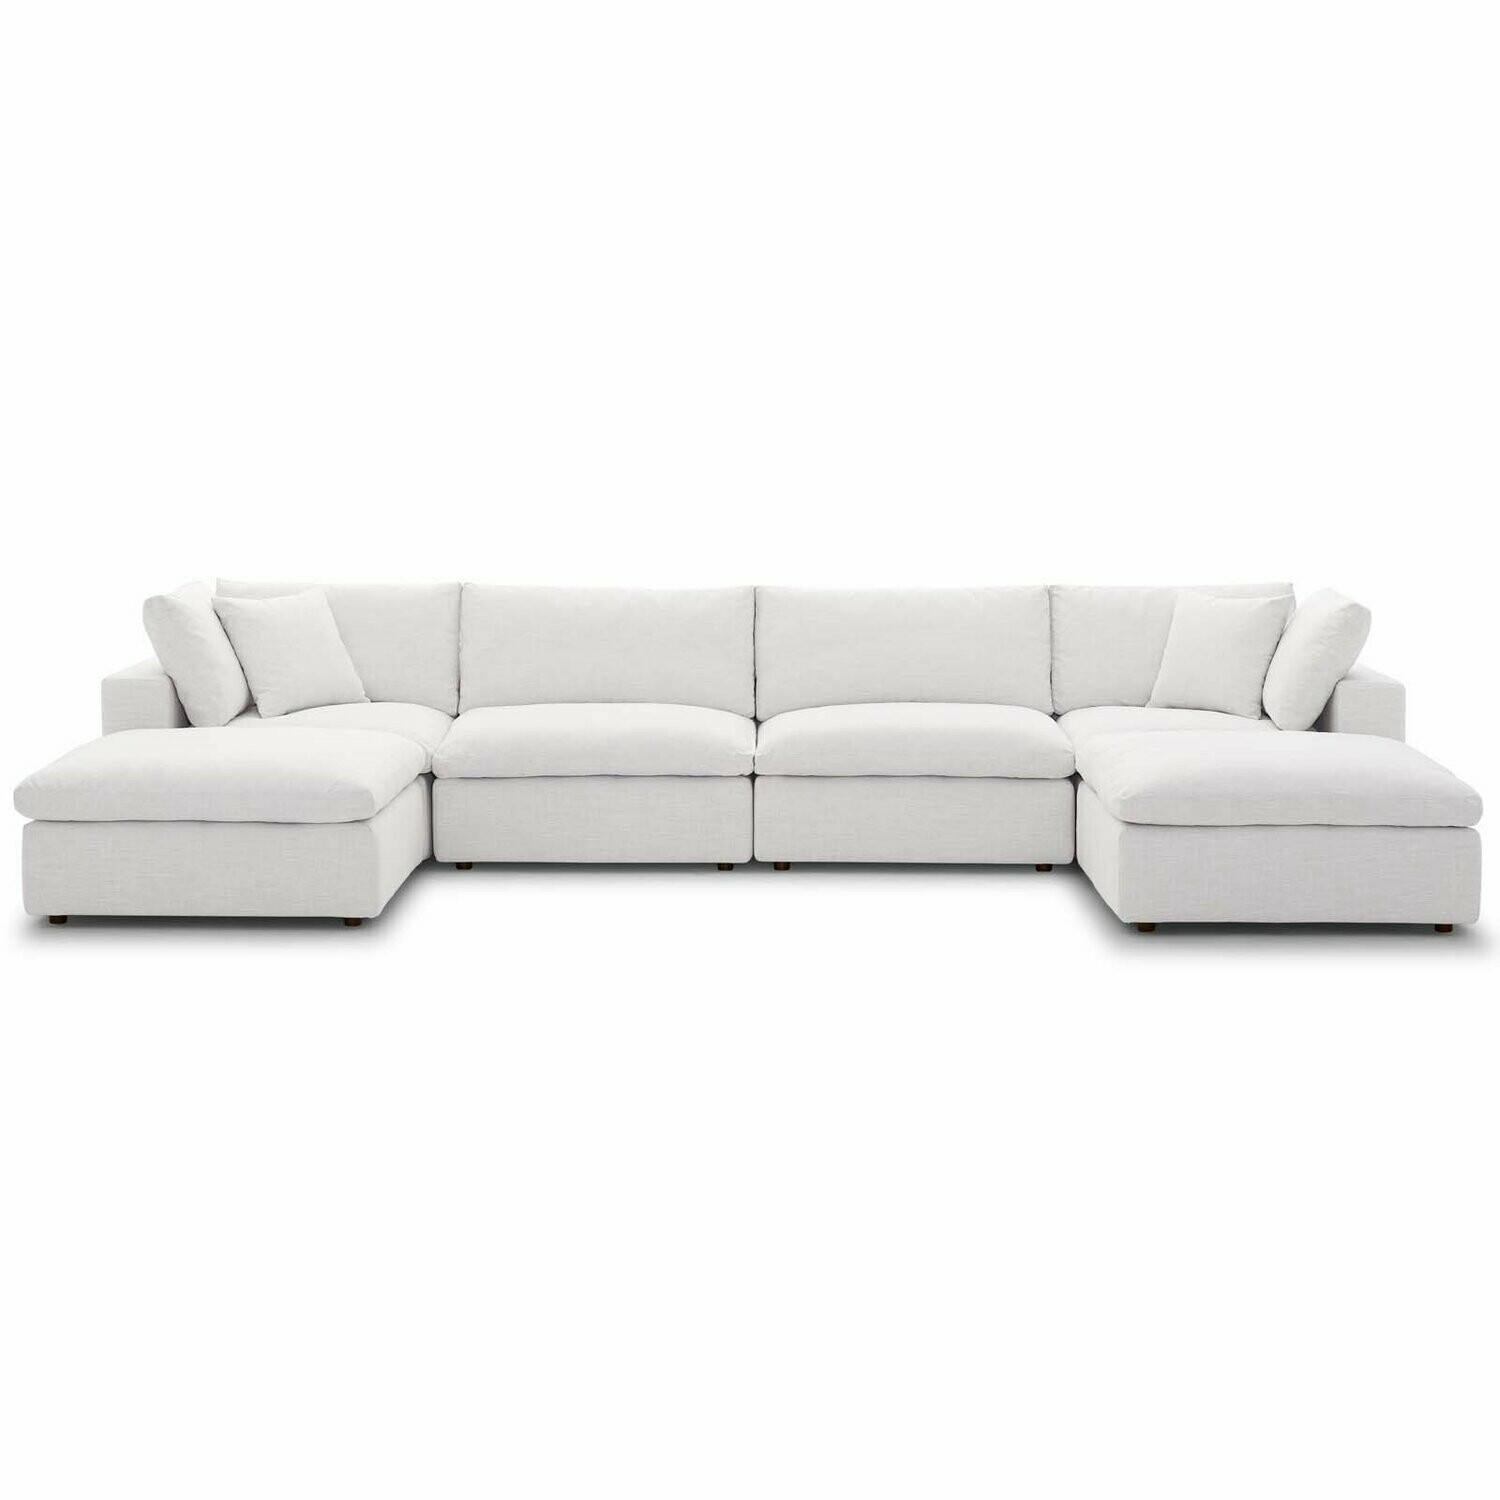 Comet Down Filled Overstuffed 6 Piece Sectional Sofa Set